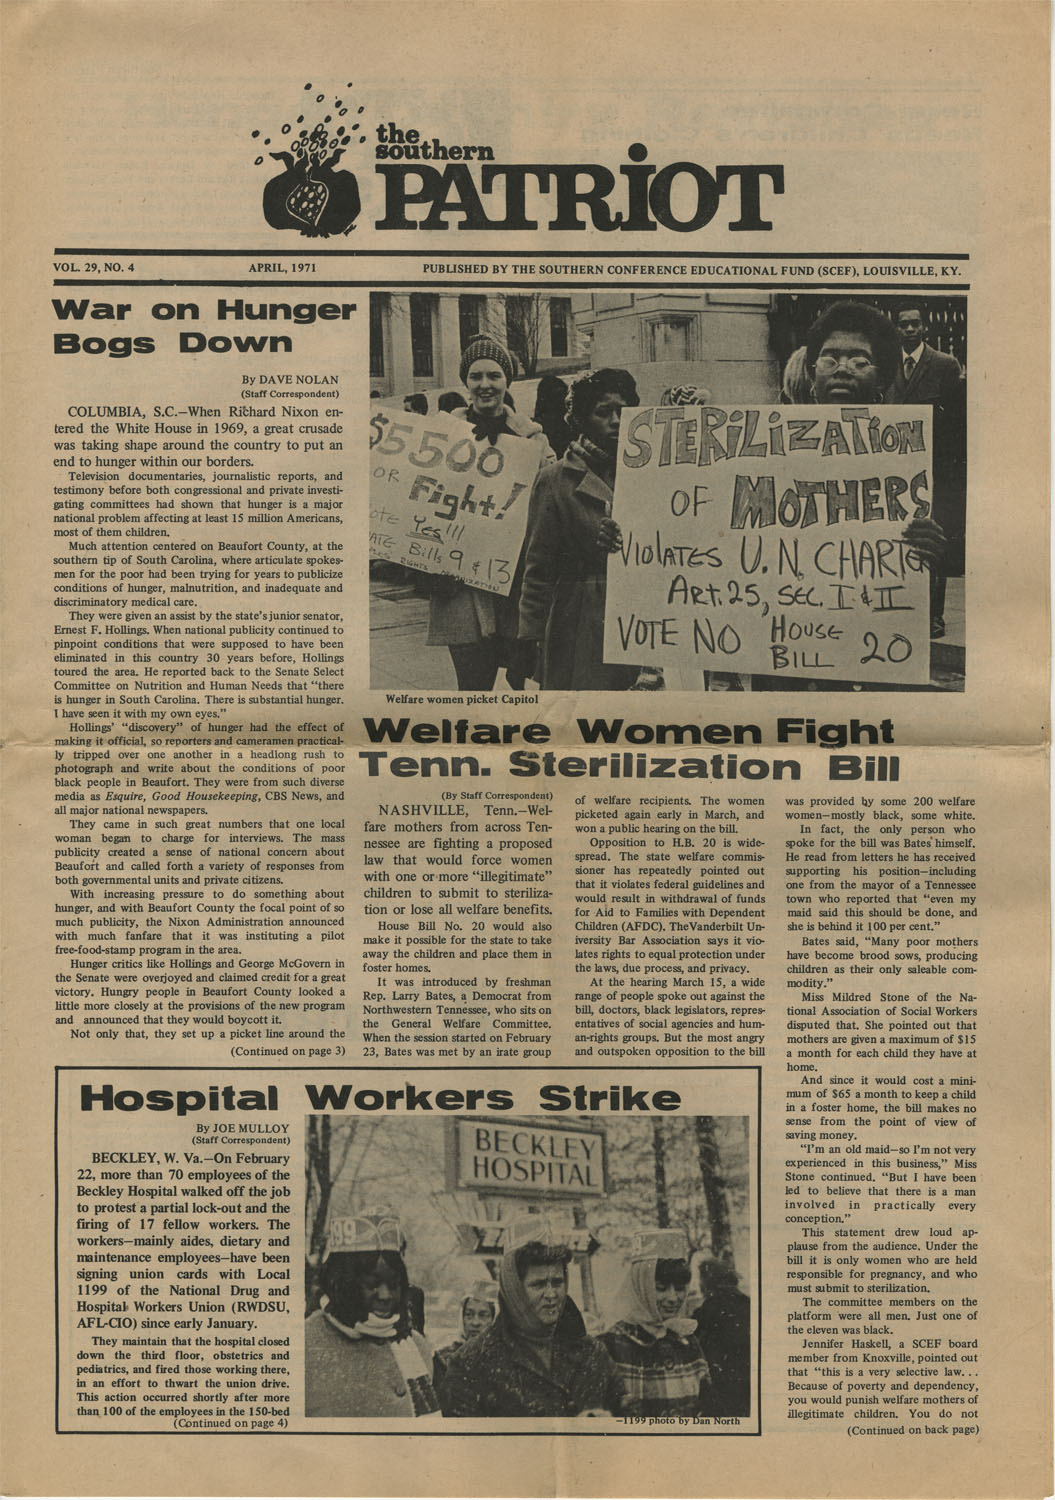 The Southern Patriot Article on Hospital Workers Strike, April 1971